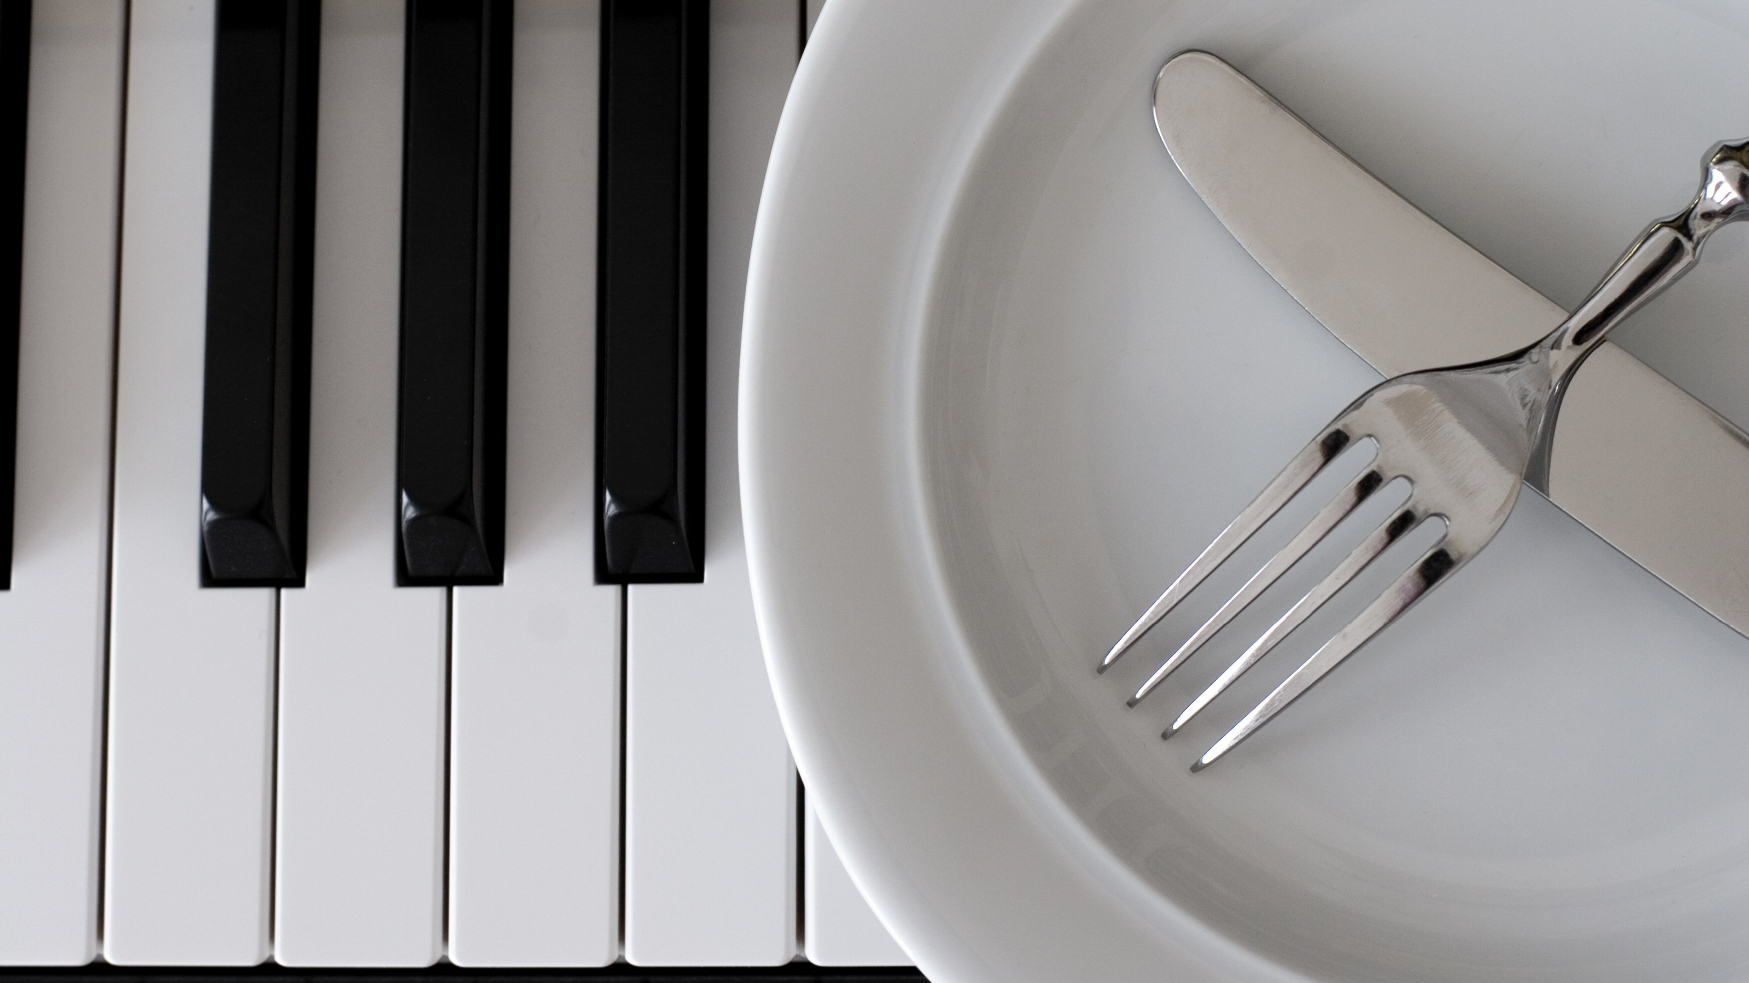 Want To Enhance The Flavor Of Your Food? Put On The Right Music